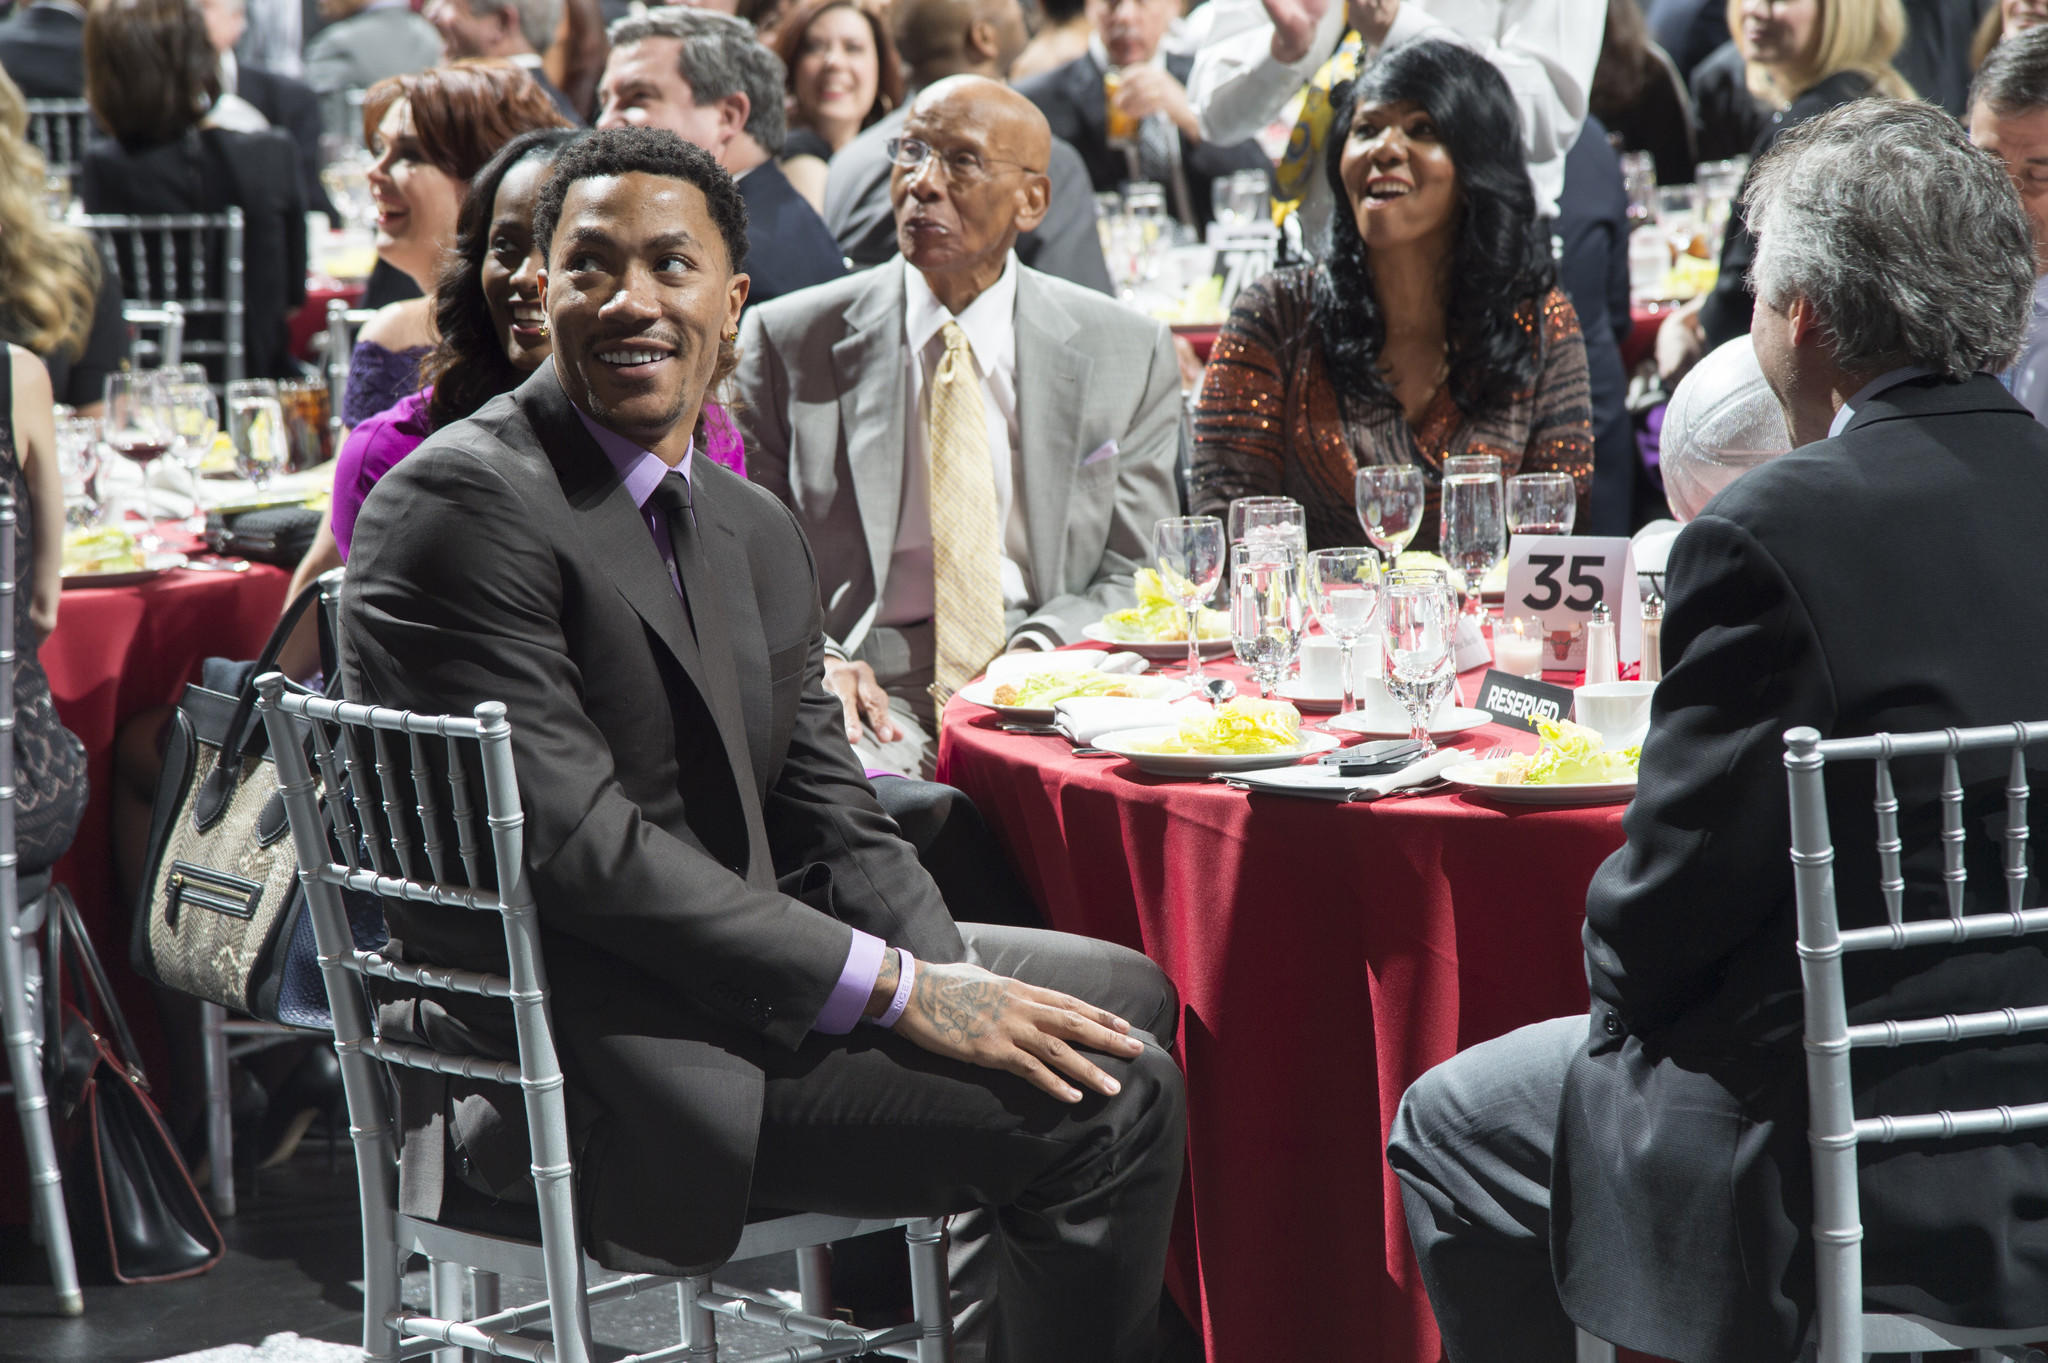 """The Bulls' Derrick Rose and Cubs legend Ernie Banks attend """"An Evening with the Bulls"""" fundraiser Feb. 12, 2014 at the United Center."""